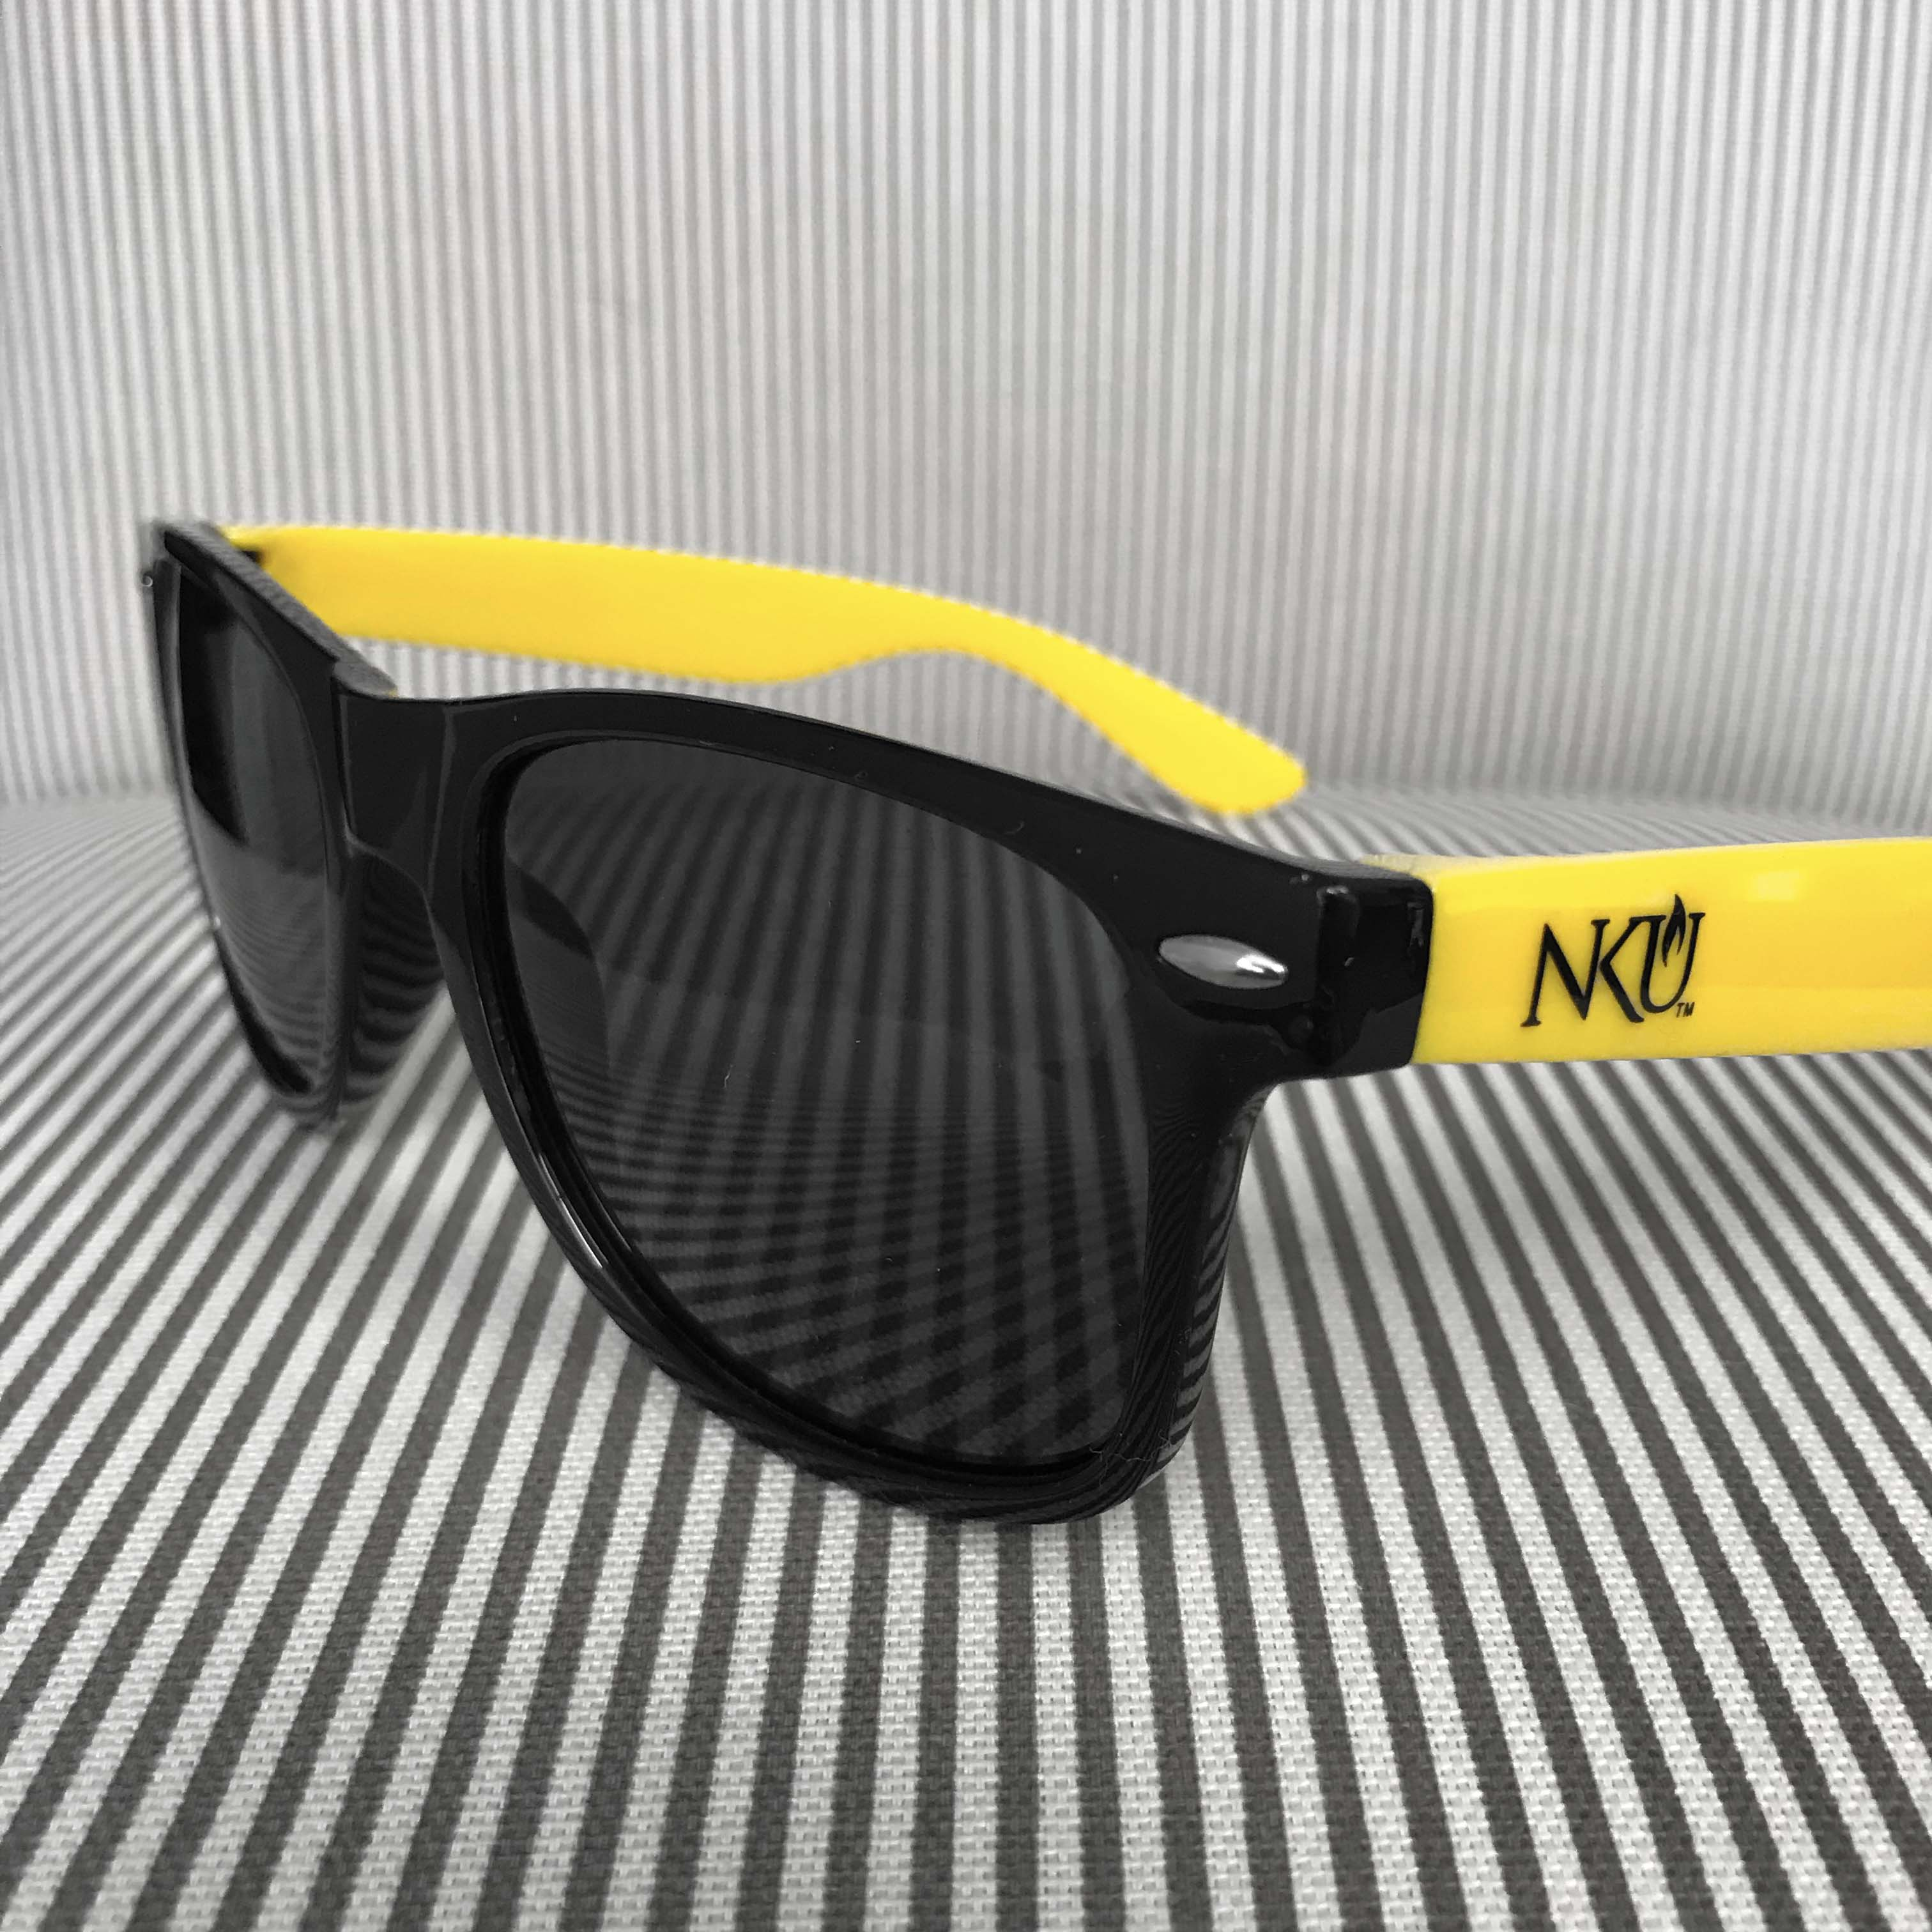 Yellow sunglasses with the NKU logo on the legs.